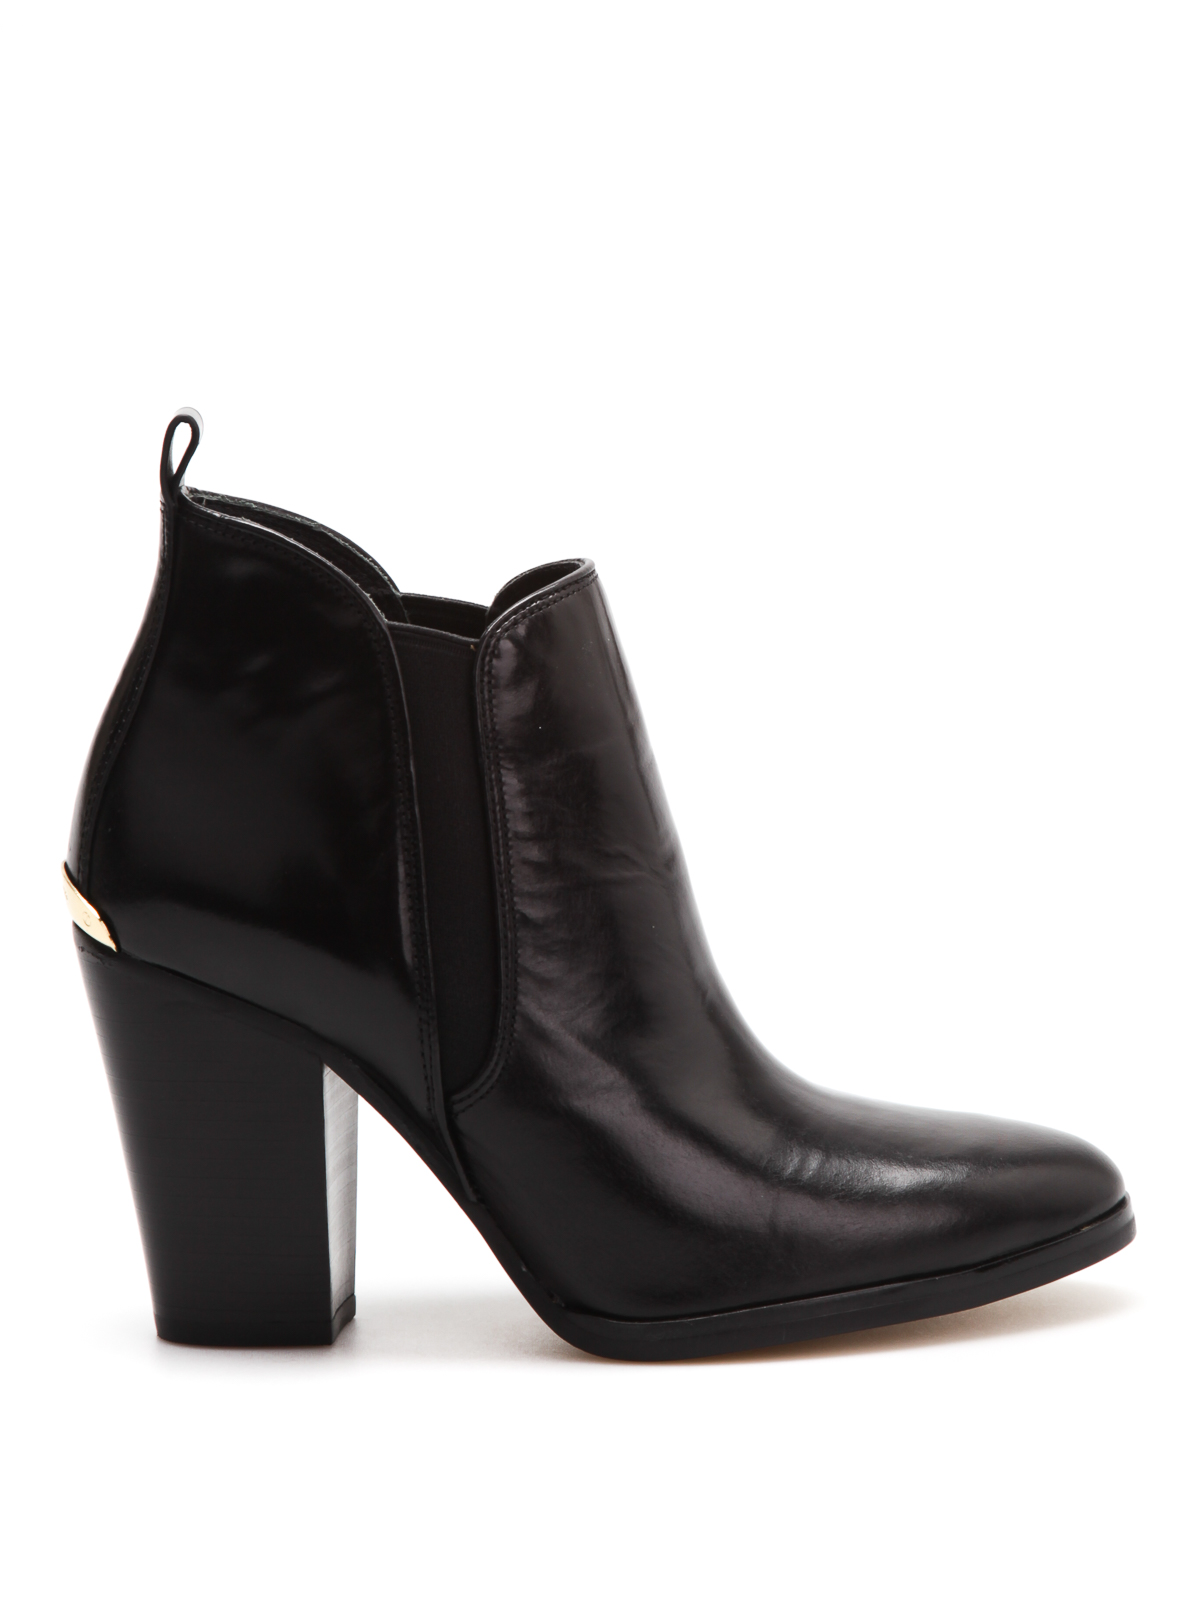 brushed leather ankle boots by michael kors ankle boots. Black Bedroom Furniture Sets. Home Design Ideas